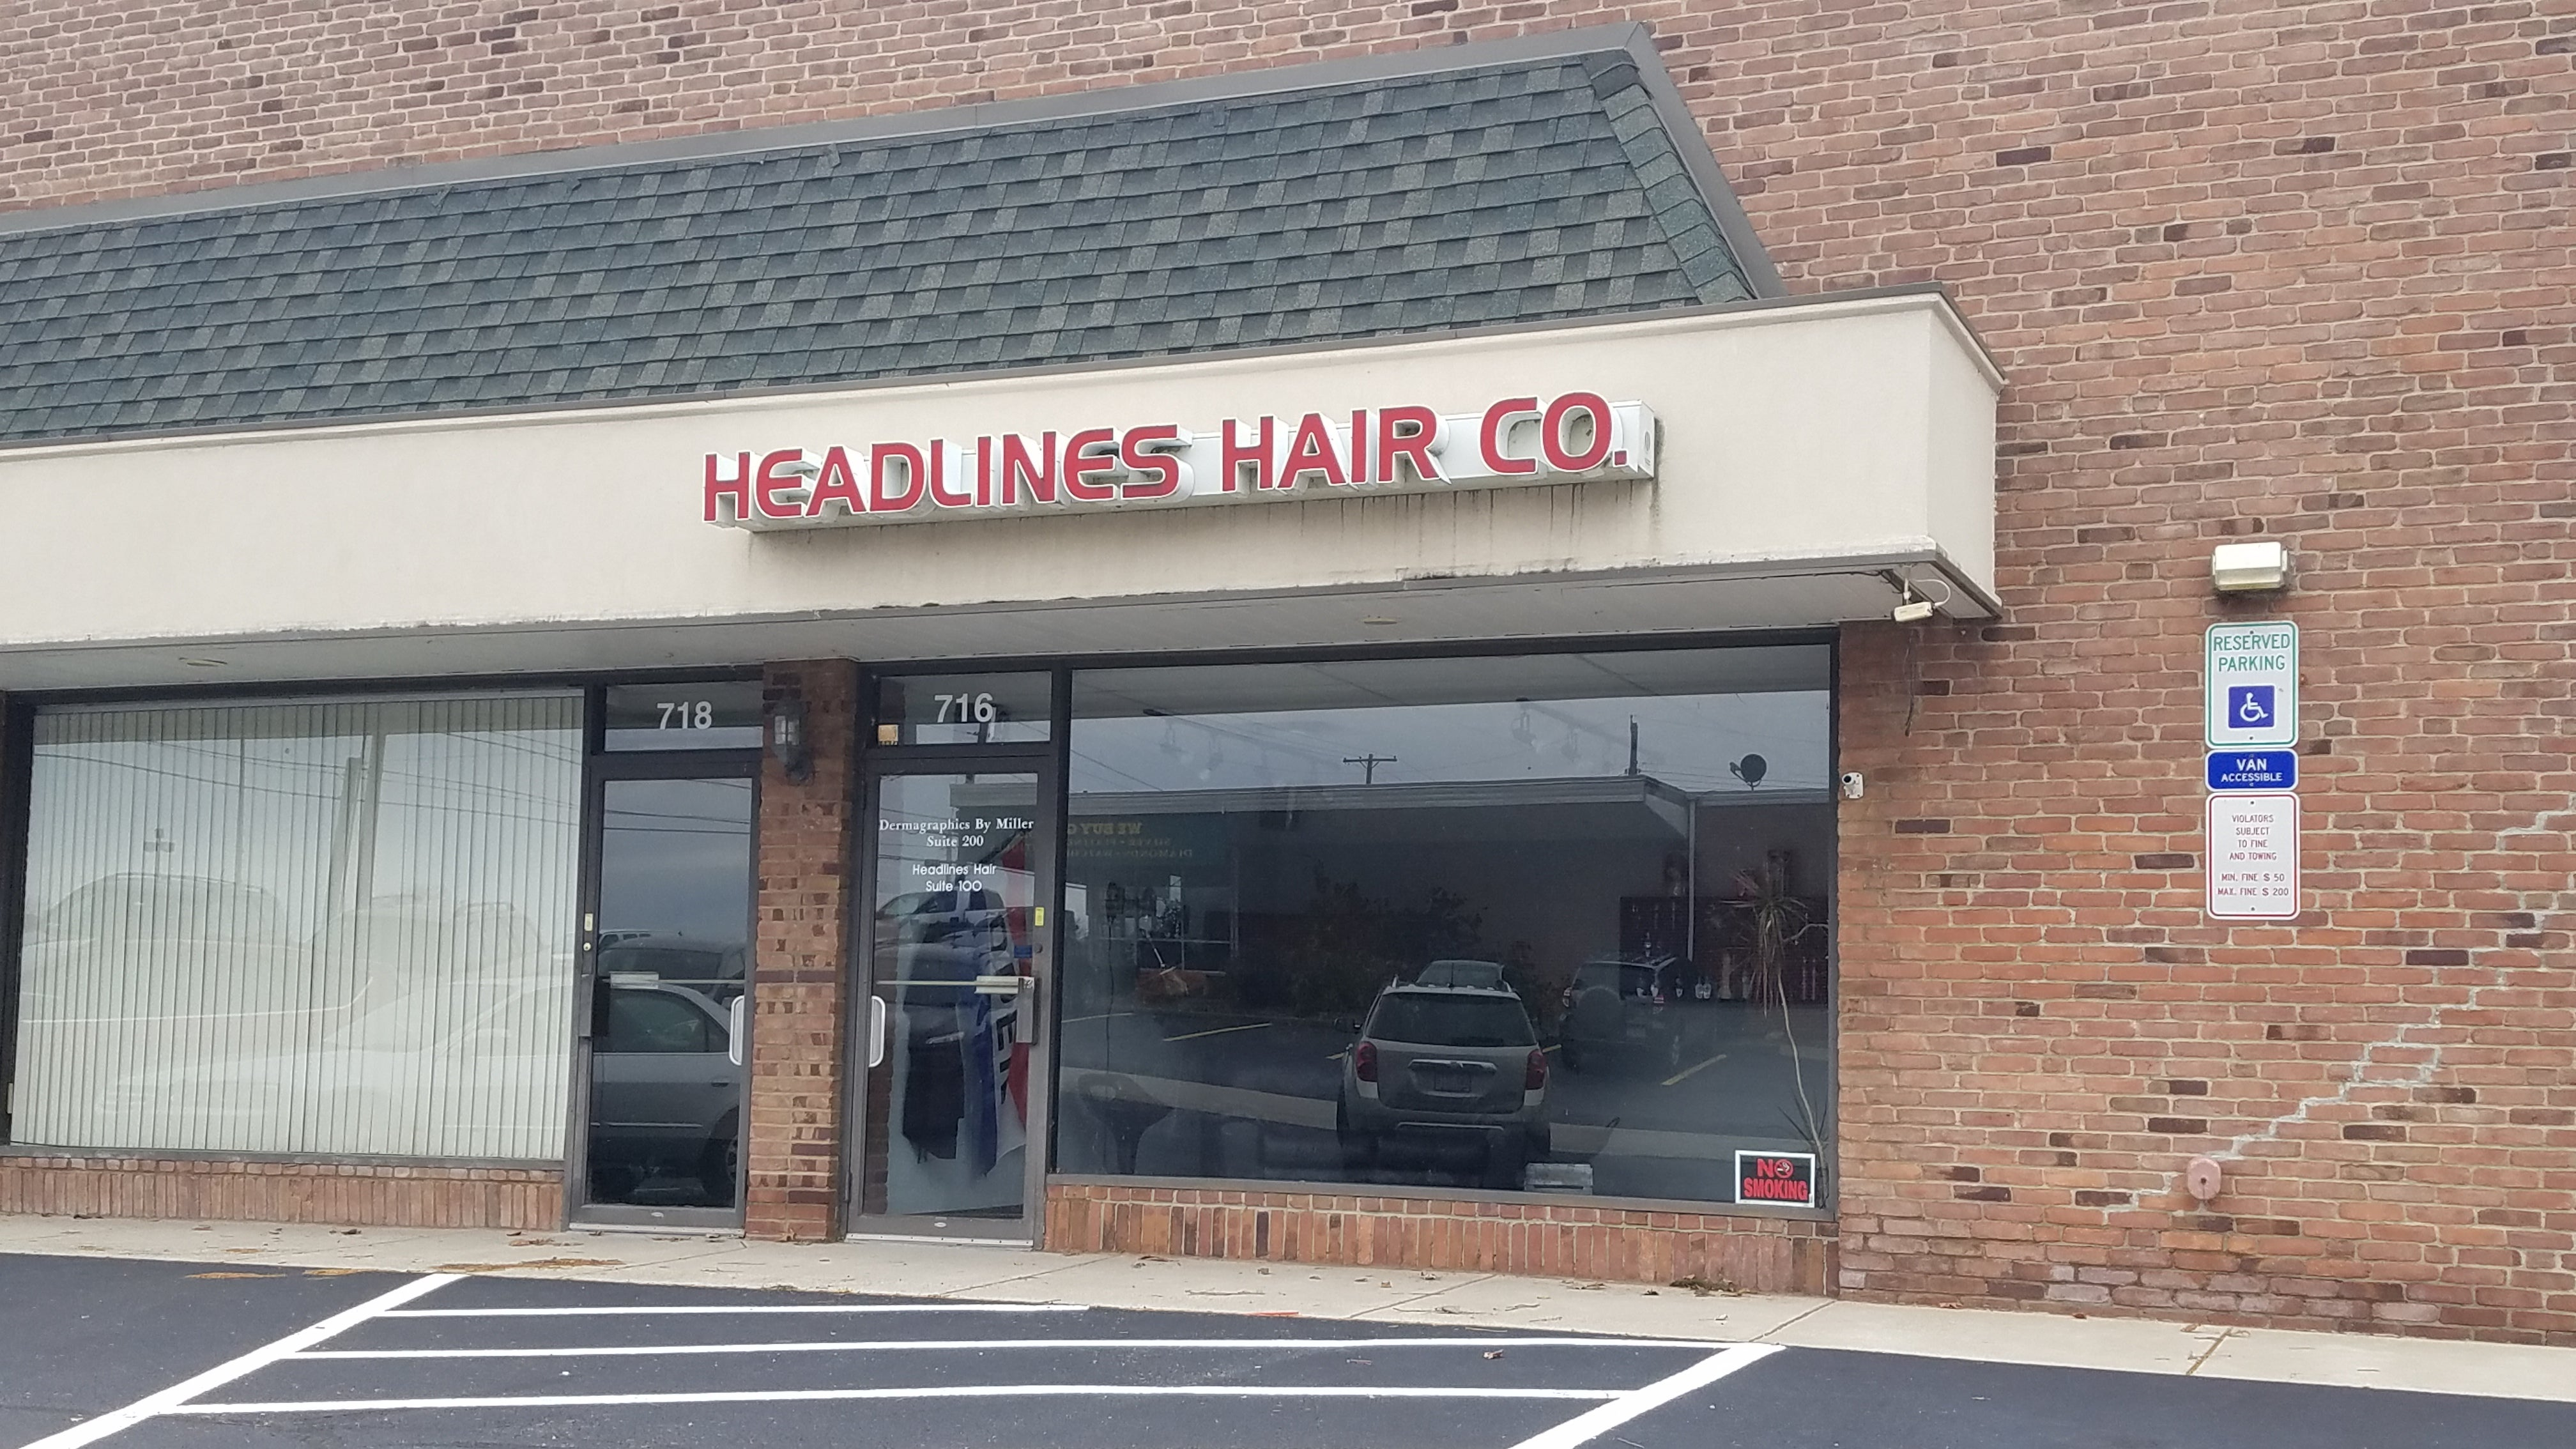 Headlines Hair Company,